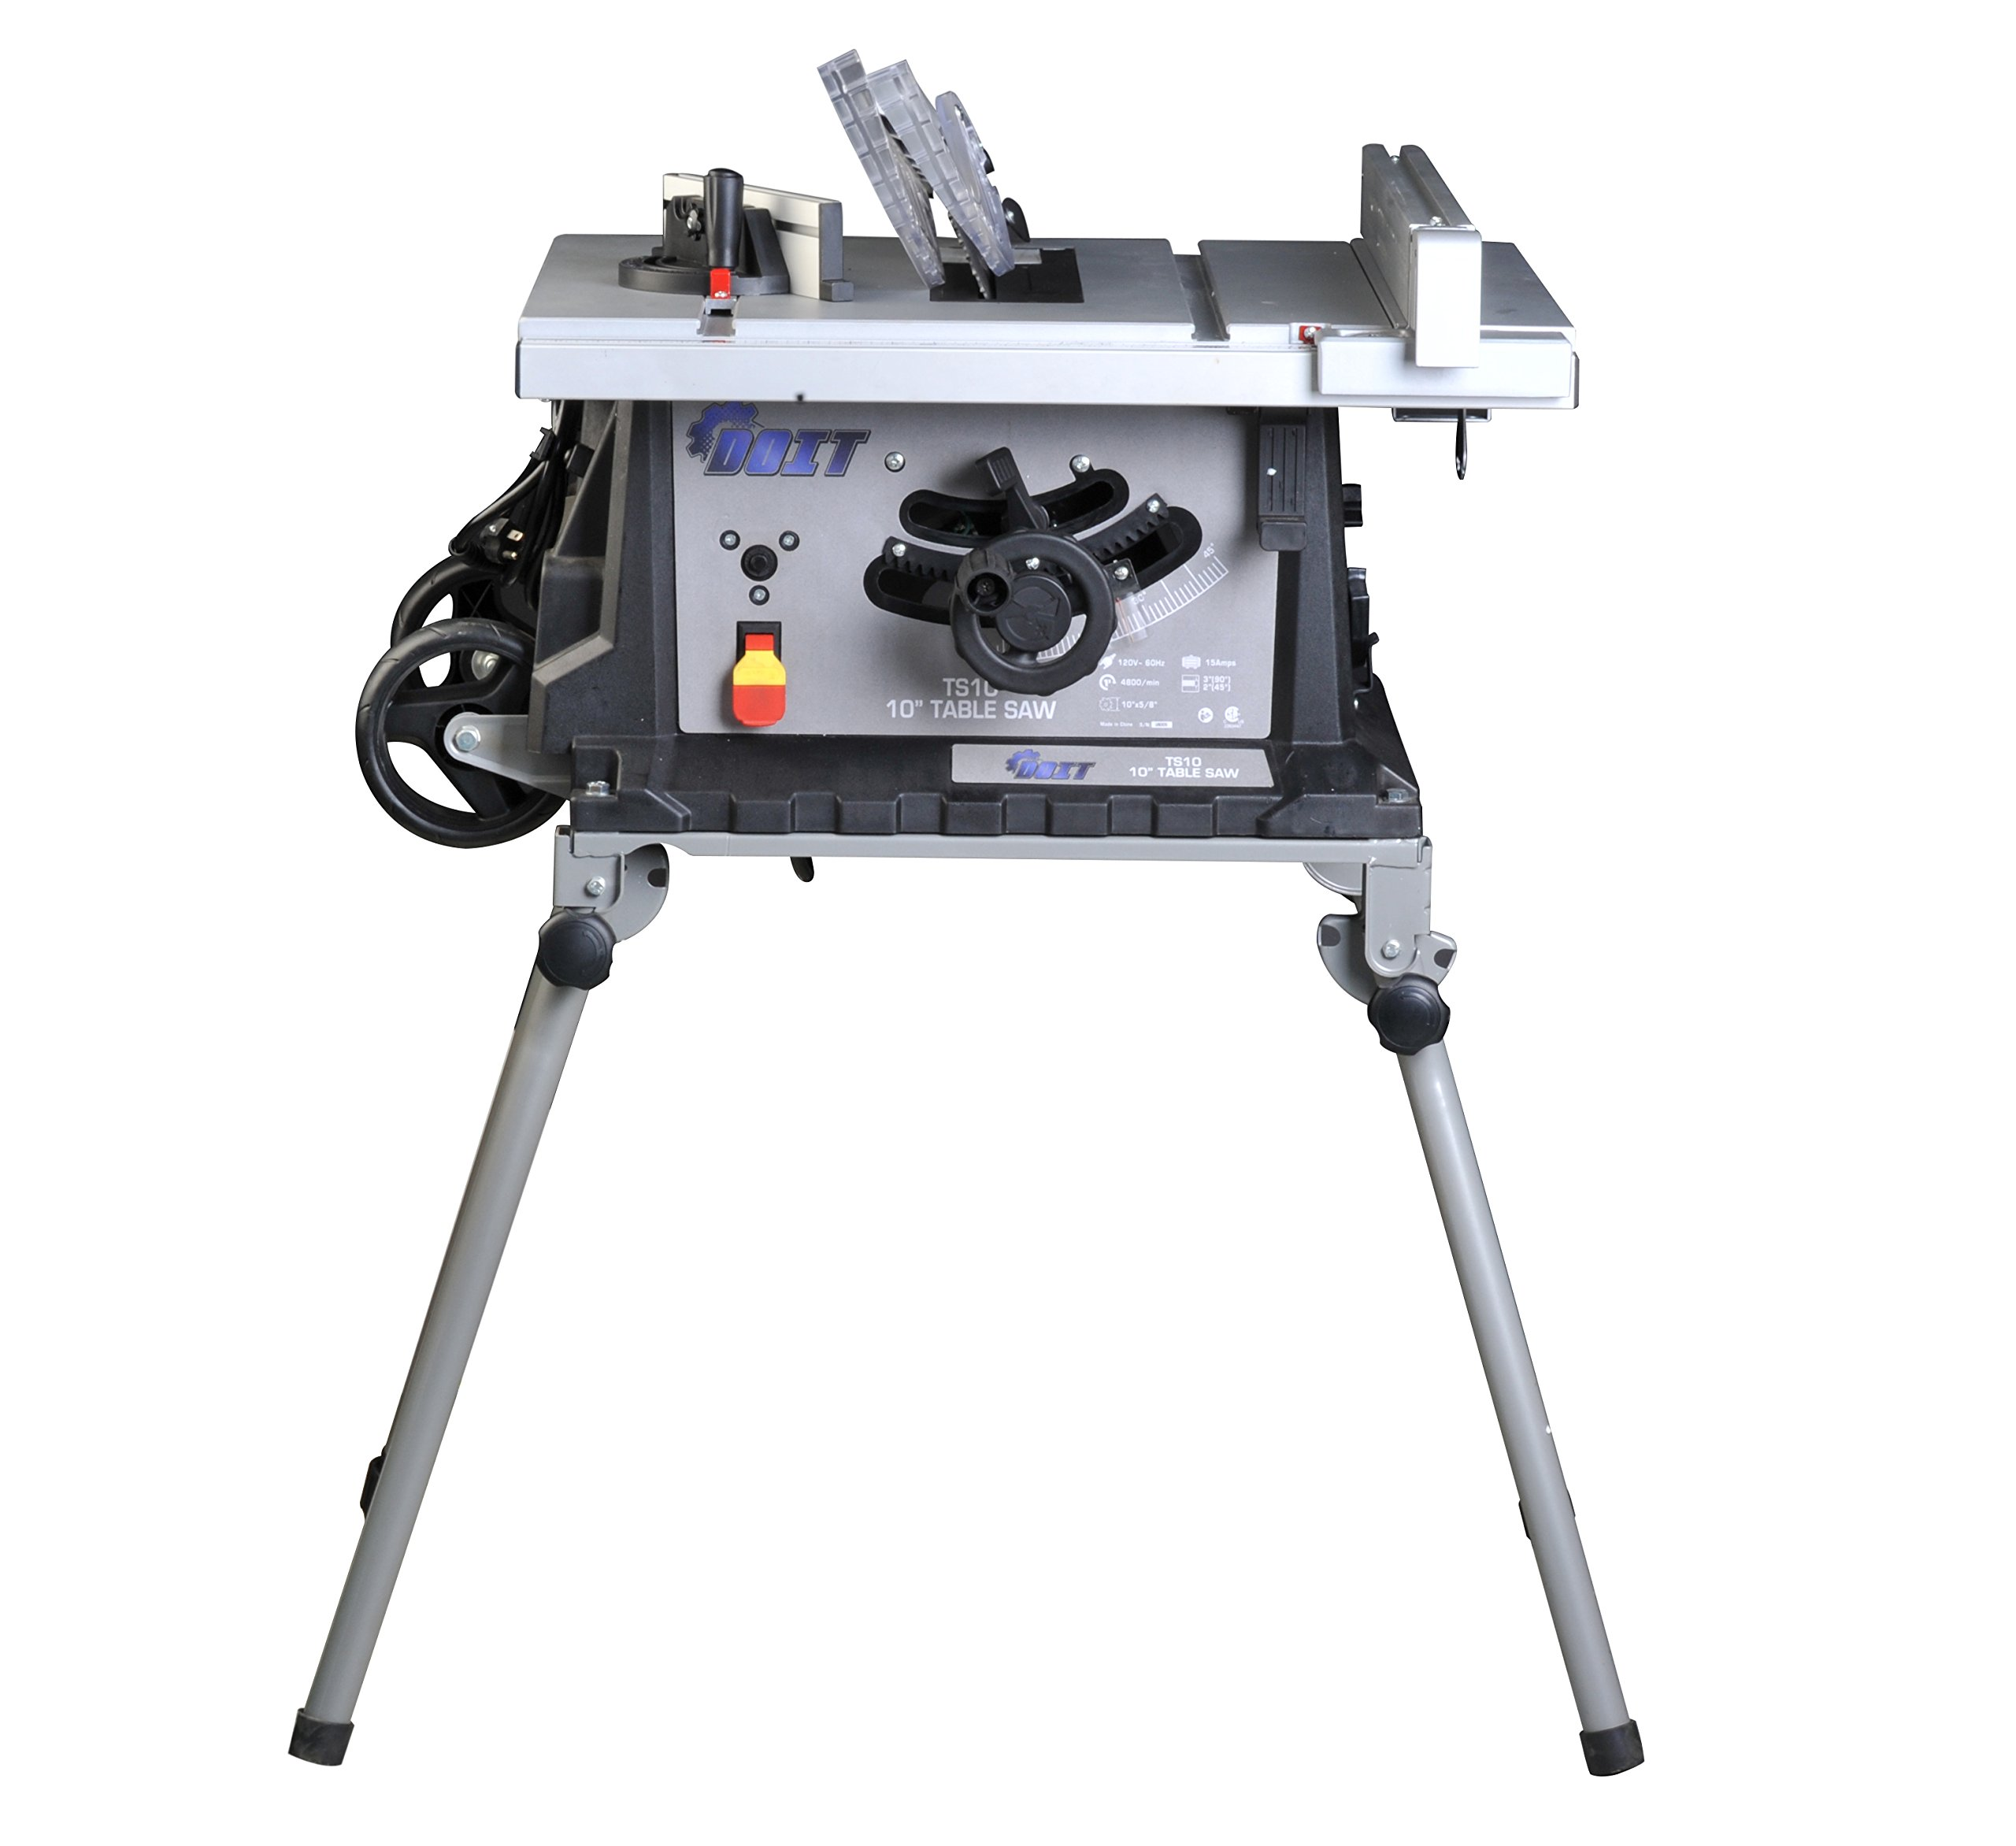 Ainfox 15Amp 10'' Table Saw, Foldable Stand Wheels Fence Movable 4800/min Speed